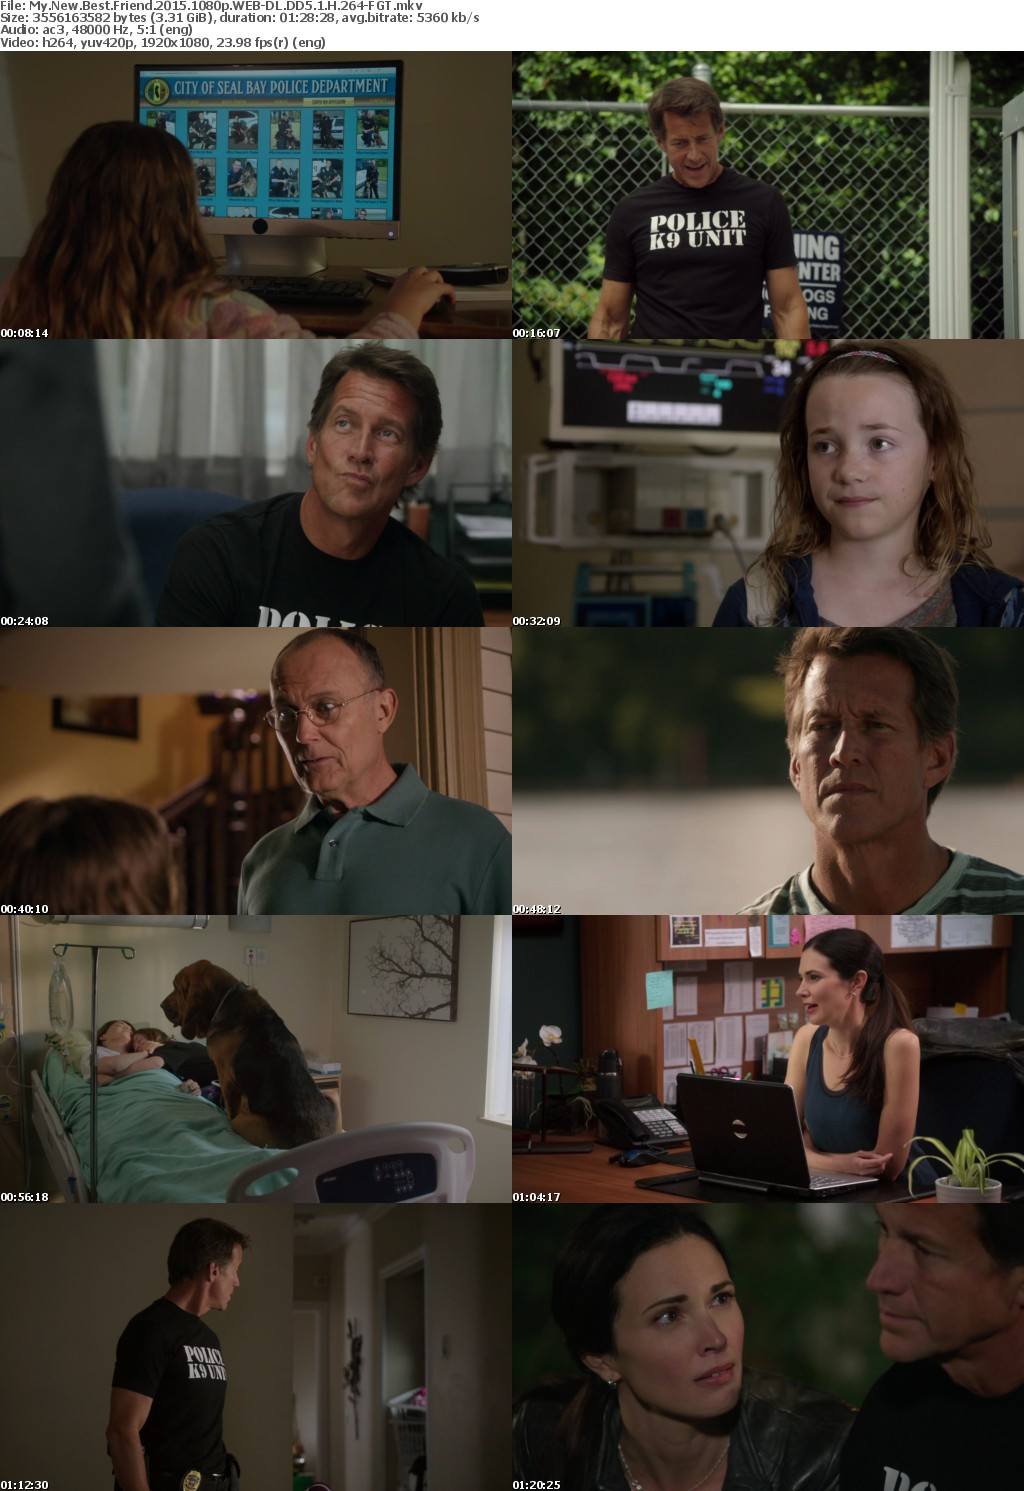 My New Best Friend (2015) 1080p WEB-DL DD5.1 H264-FGT